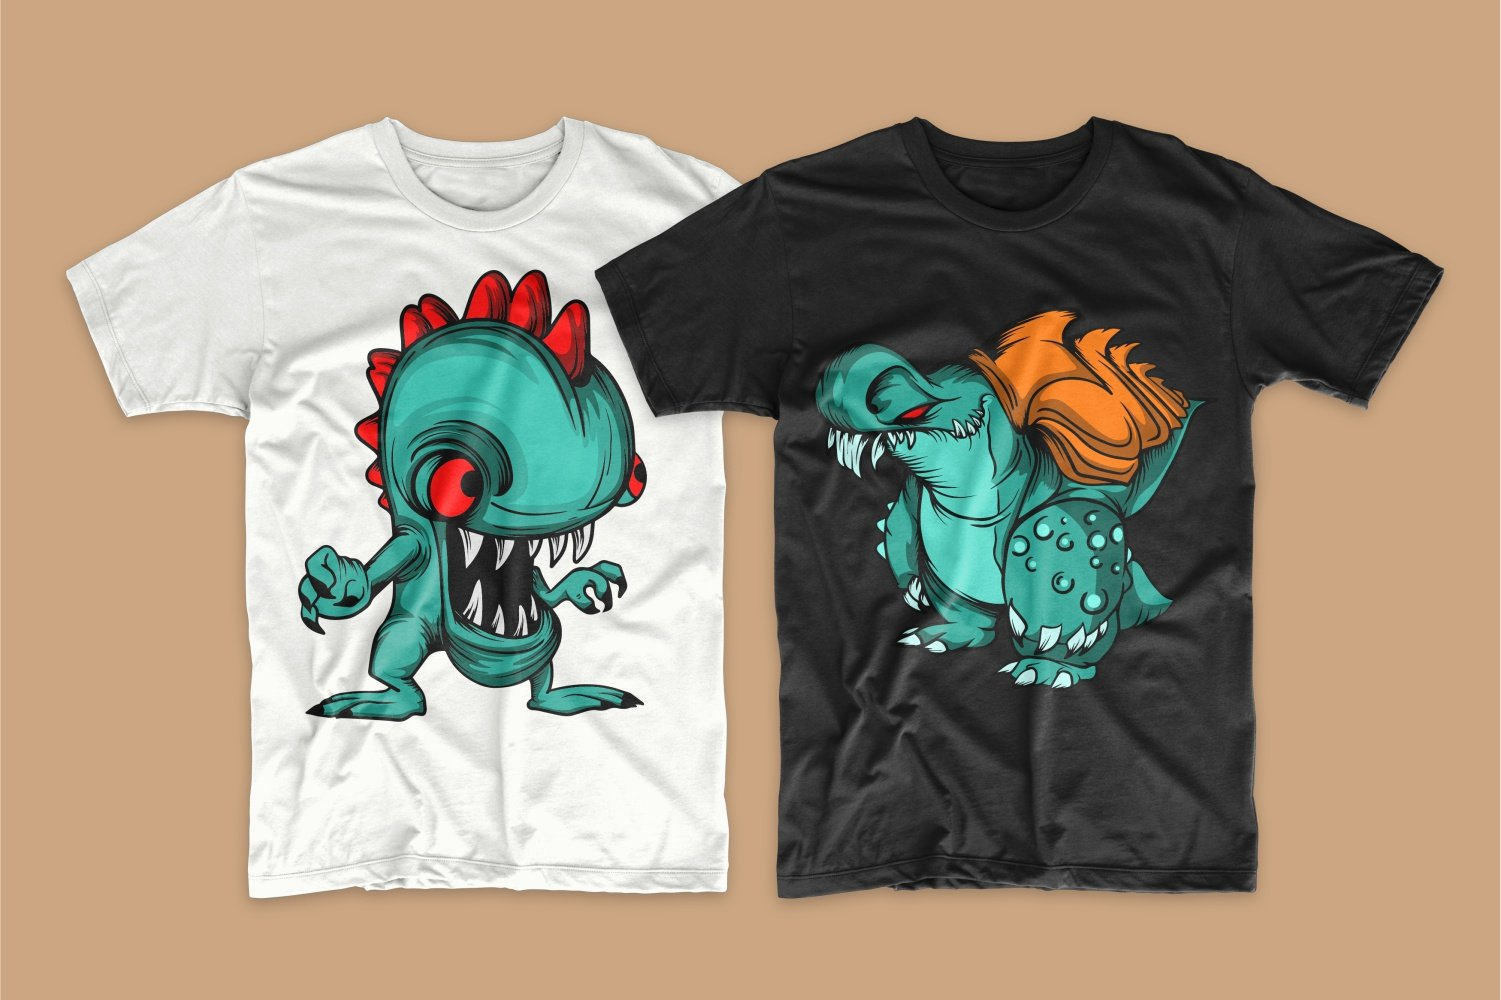 White T-shirt with a green playful monster with a red tuft and a black one with an emerald monster with red tails.